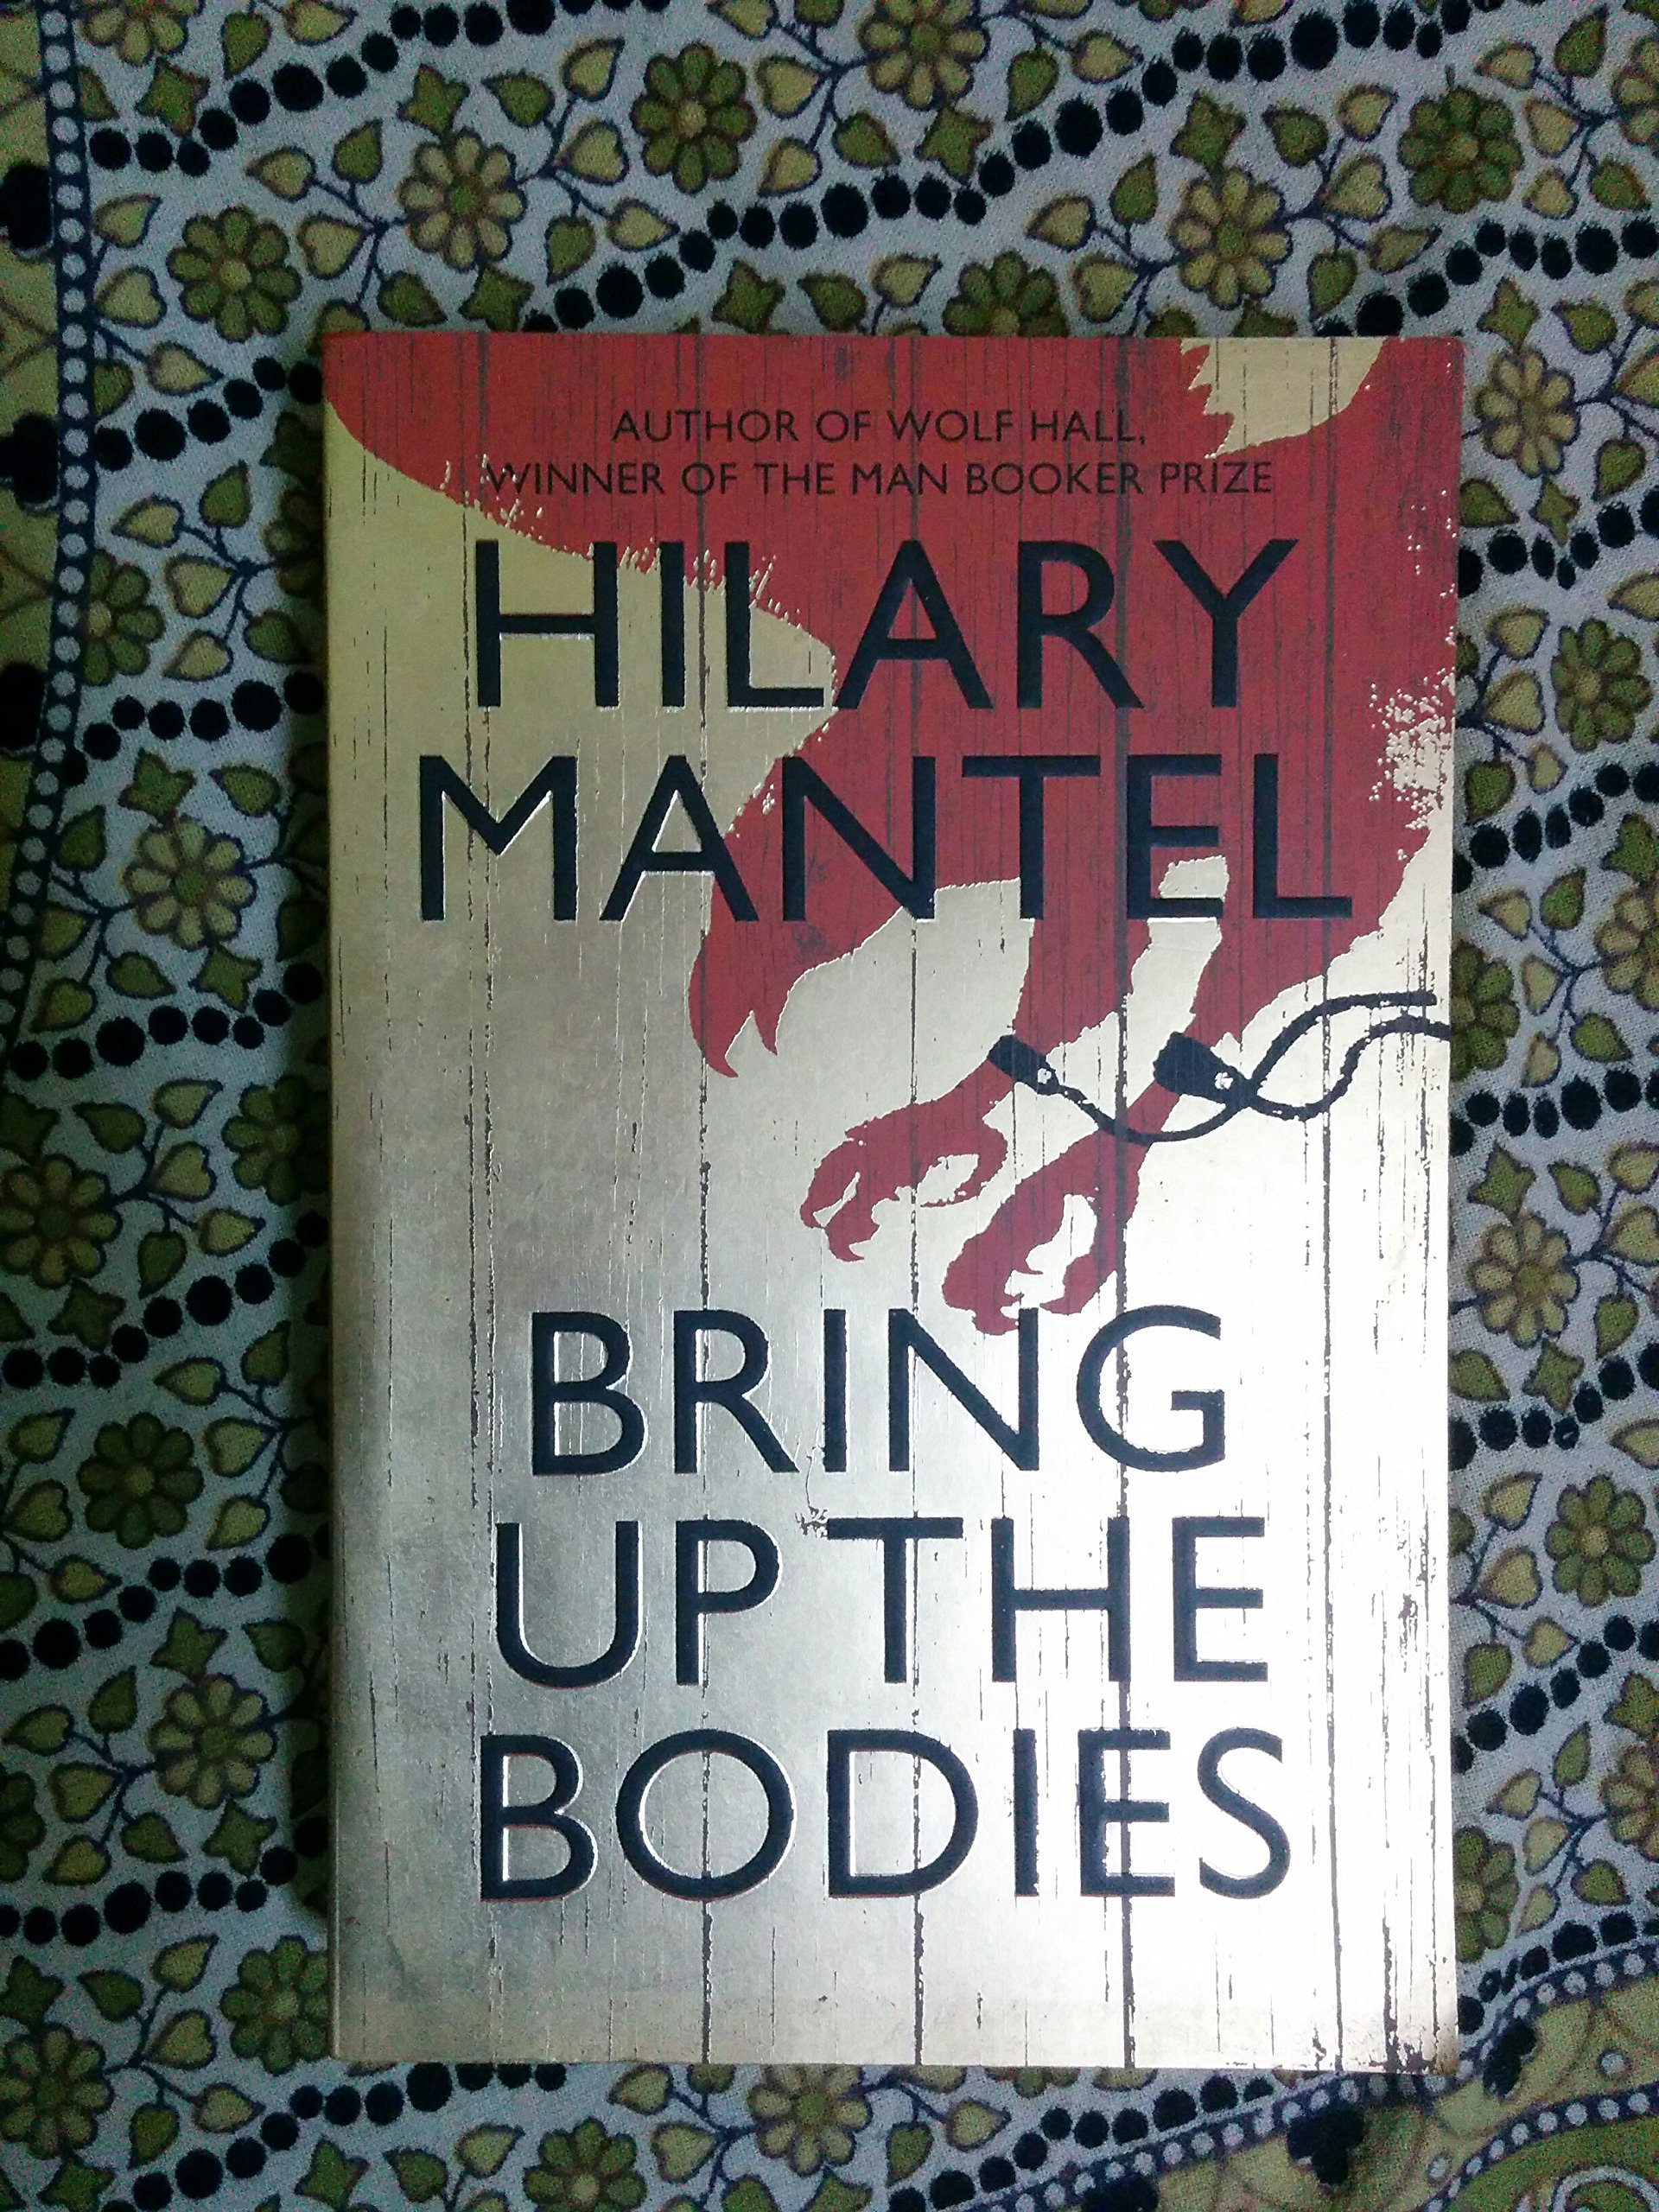 Buy Bring Up The Bodies: Booker Prize Winner 2012 Book Online At Low Prices  In India  Bring Up The Bodies: Booker Prize Winner 2012 Reviews & Ratings